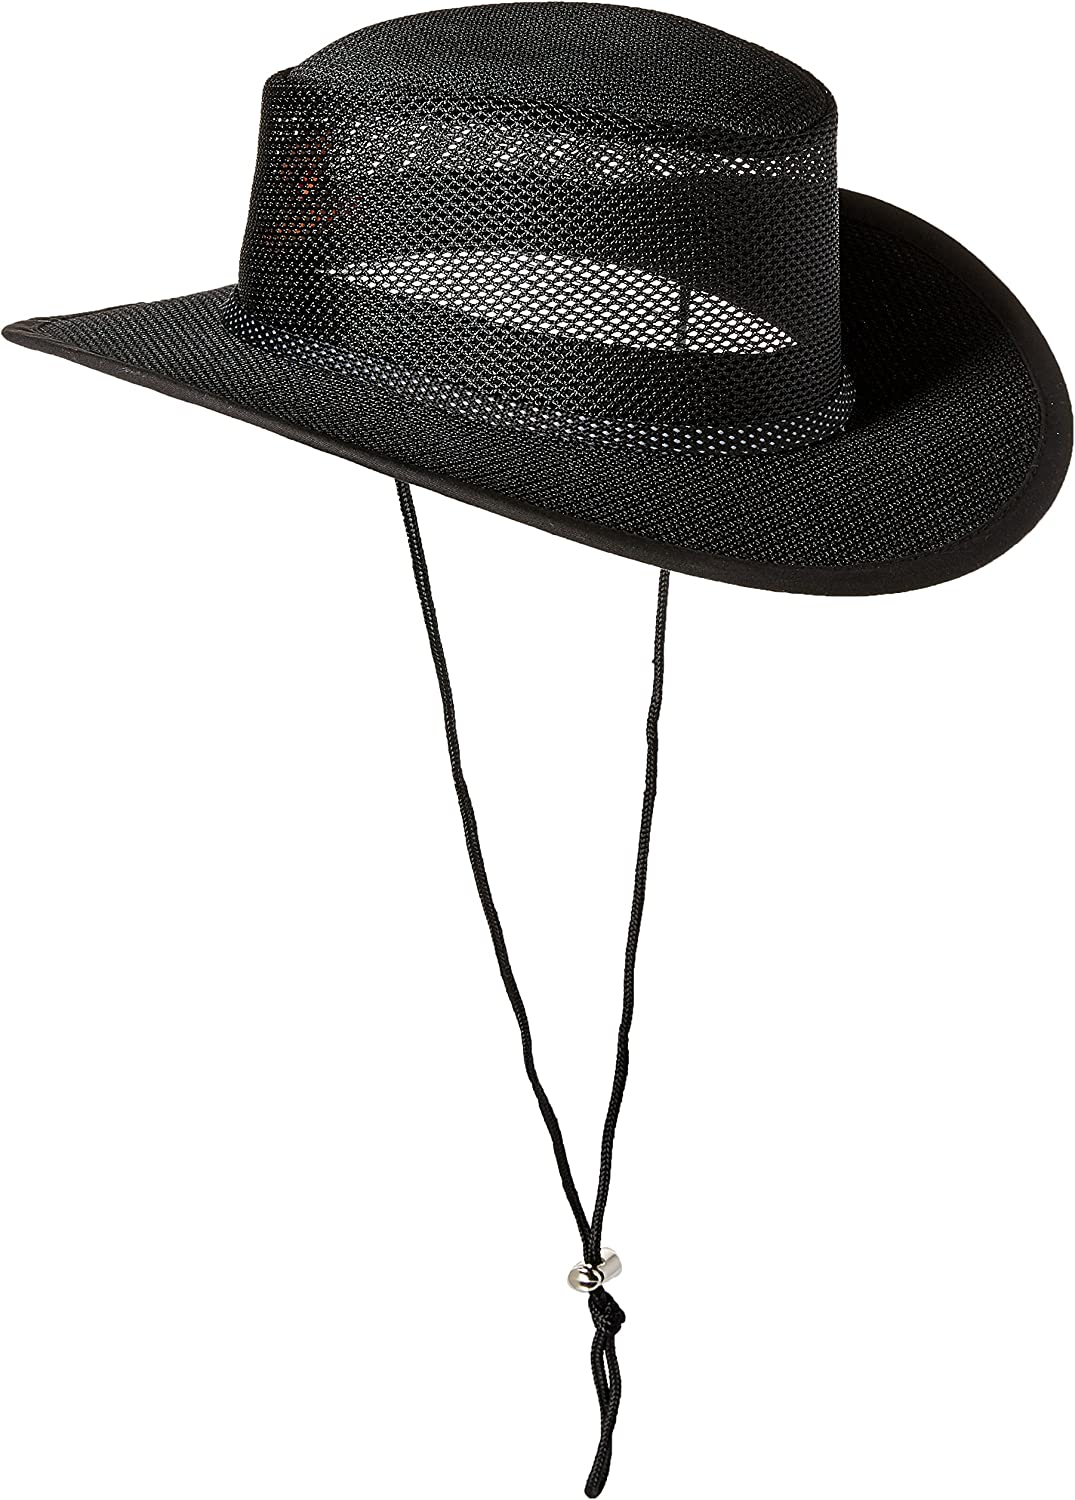 Stetson Men's Mesh Hat Covered 70% OFF Outlet Max 73% OFF